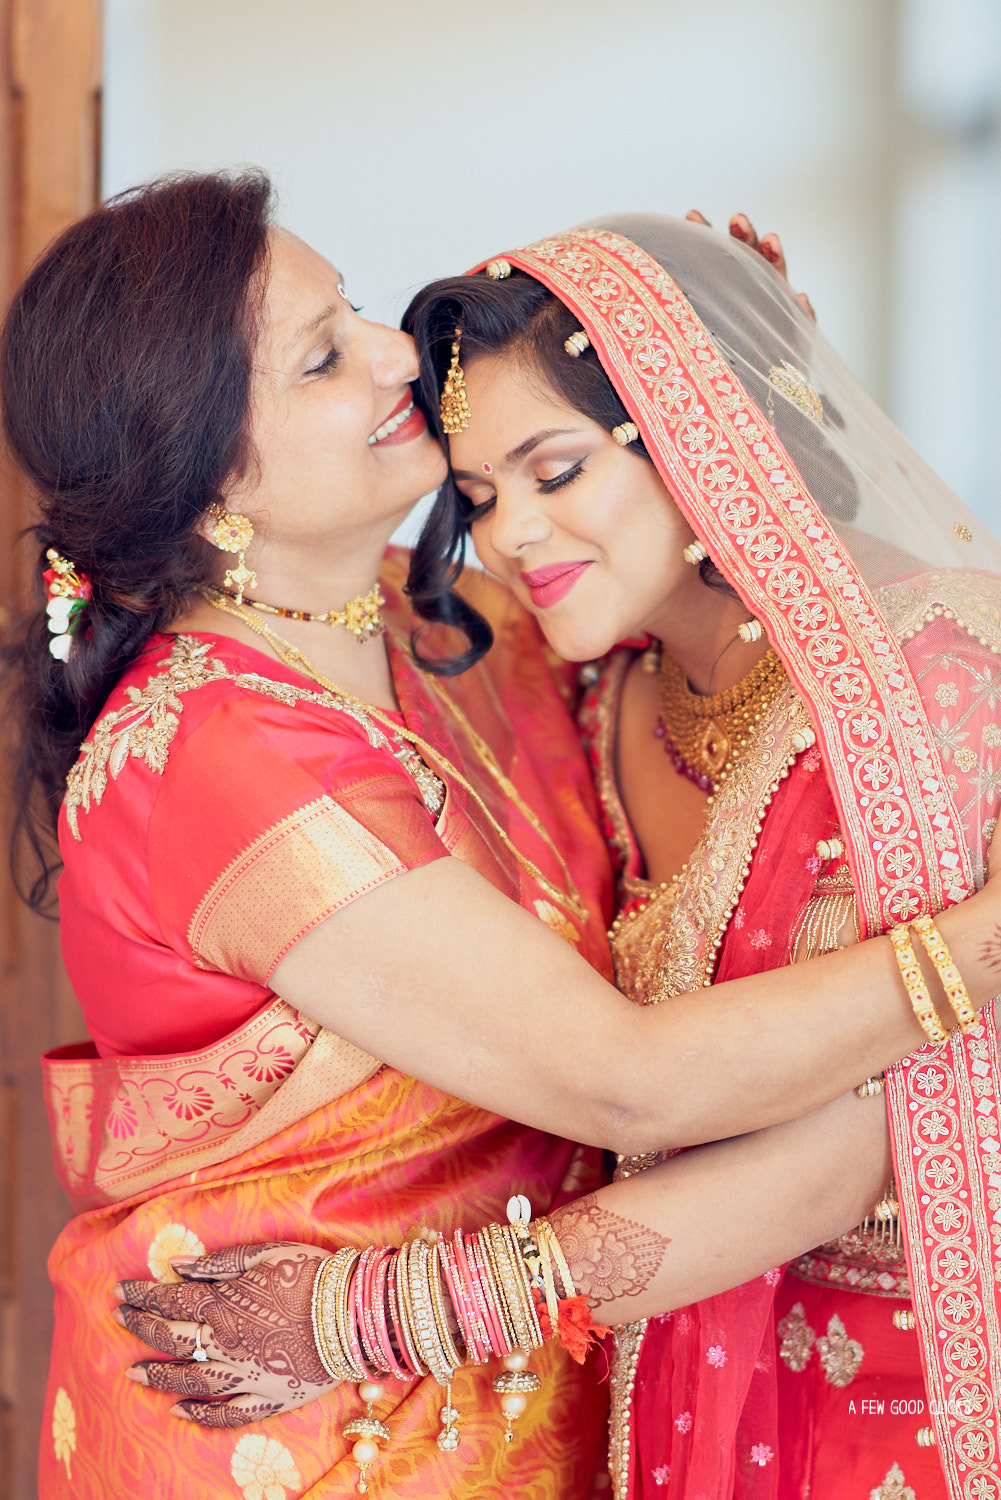 indian-bride-wedding-photography-at-sunnyvale-hindu-temple-ca 25.jpg